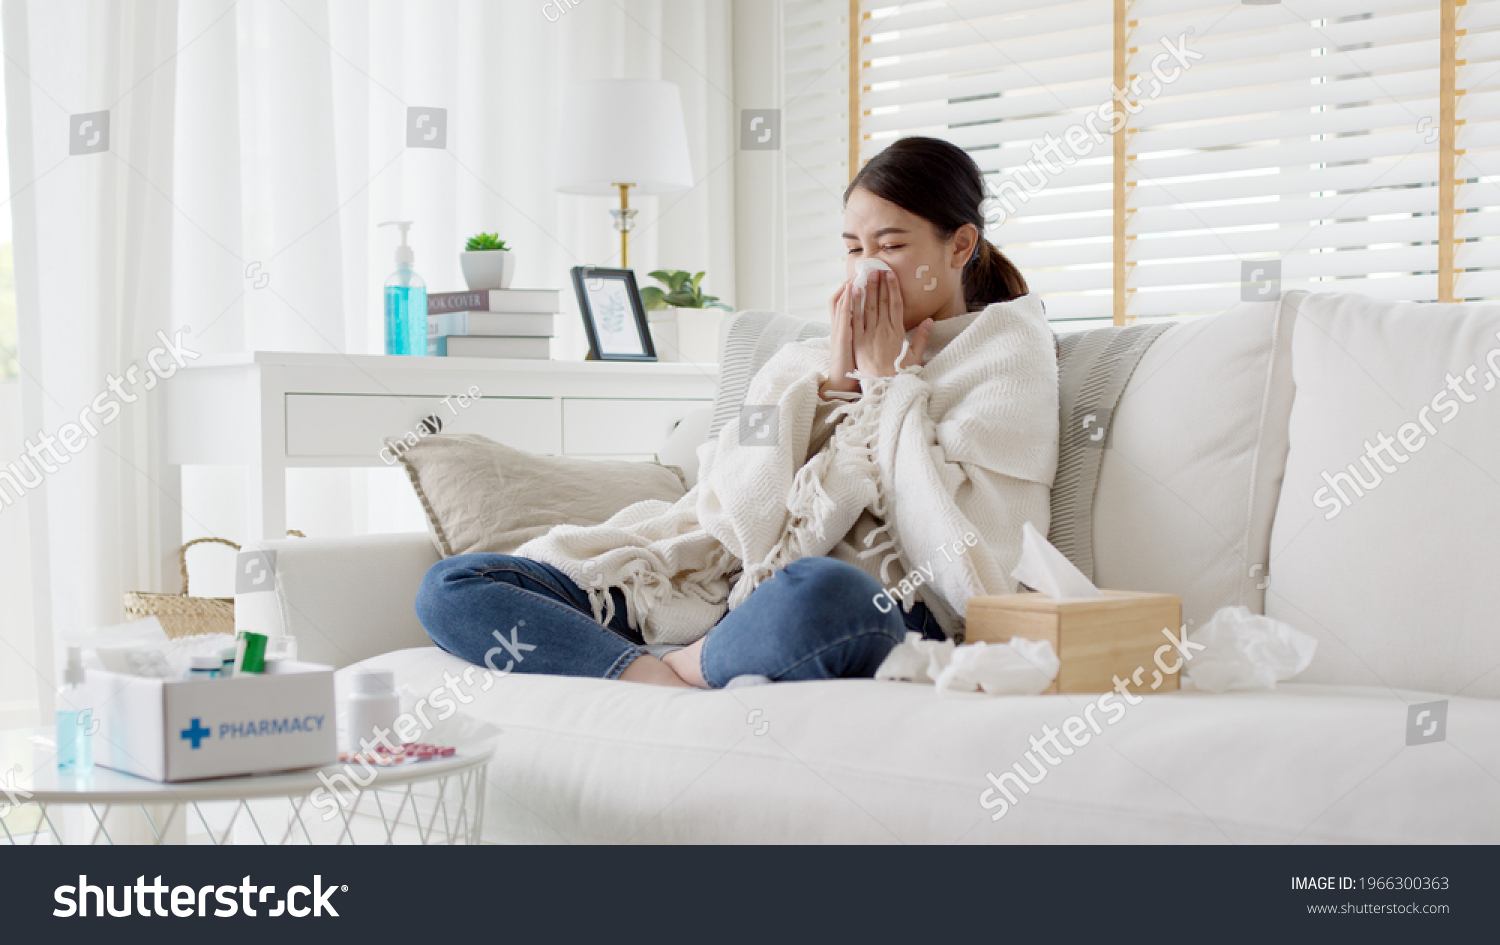 Sick young asian woman sitting under the blanket on sofa and sneeze with tissue paper at home. Female blowing nose, coughing or sneezing in tissue at home, suffering from flu. Cold and fever concept #1966300363